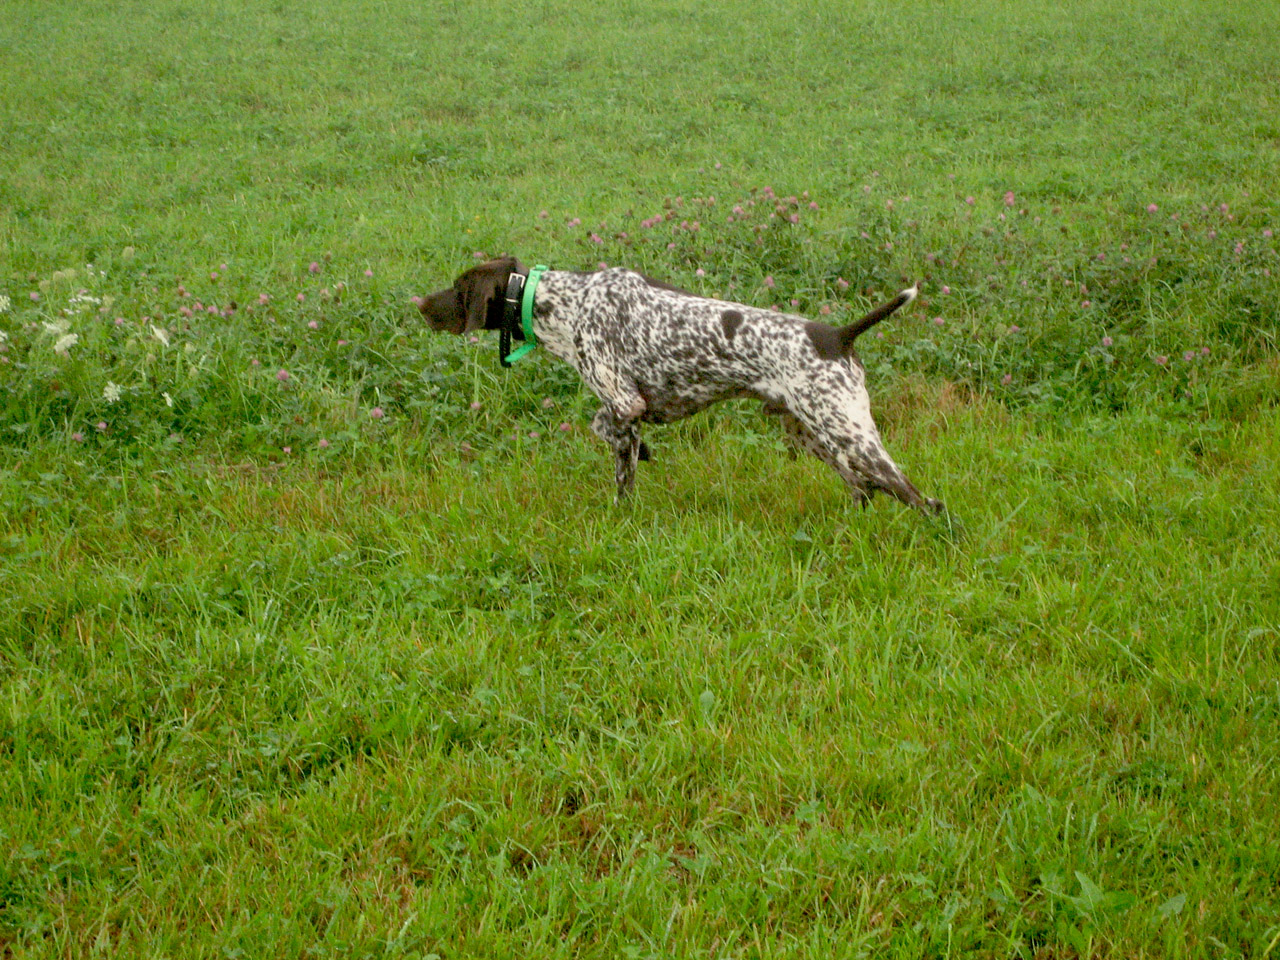 pheasant hunting with dogs youtube hunting wild pheasants of south